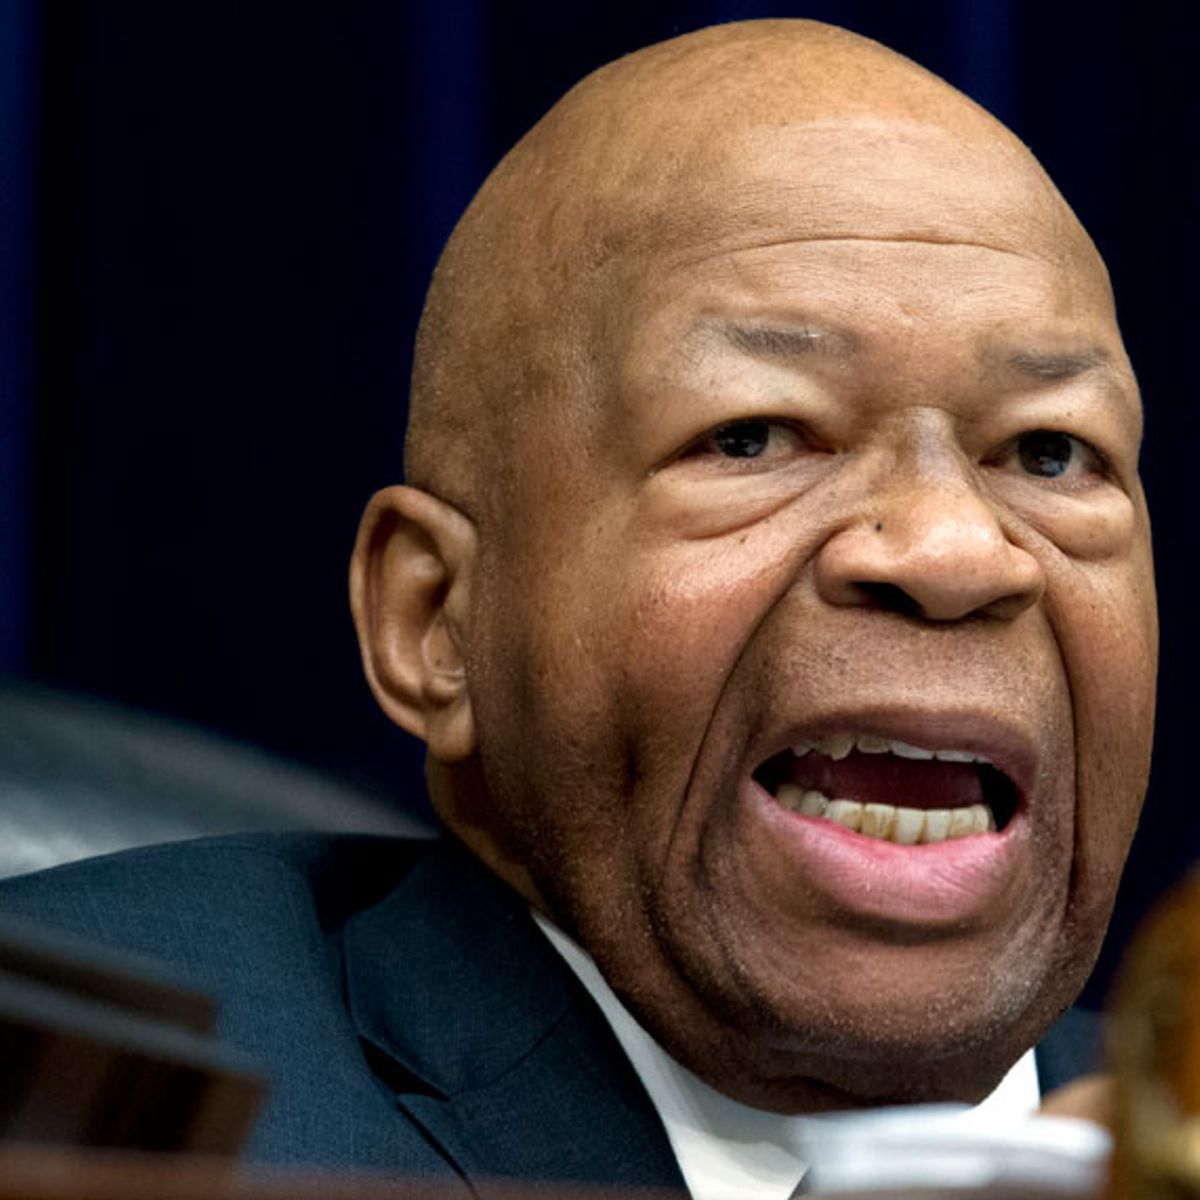 Elijah Cummings, the Maryland congressman who chaired the House Oversight Committee, dies at 68